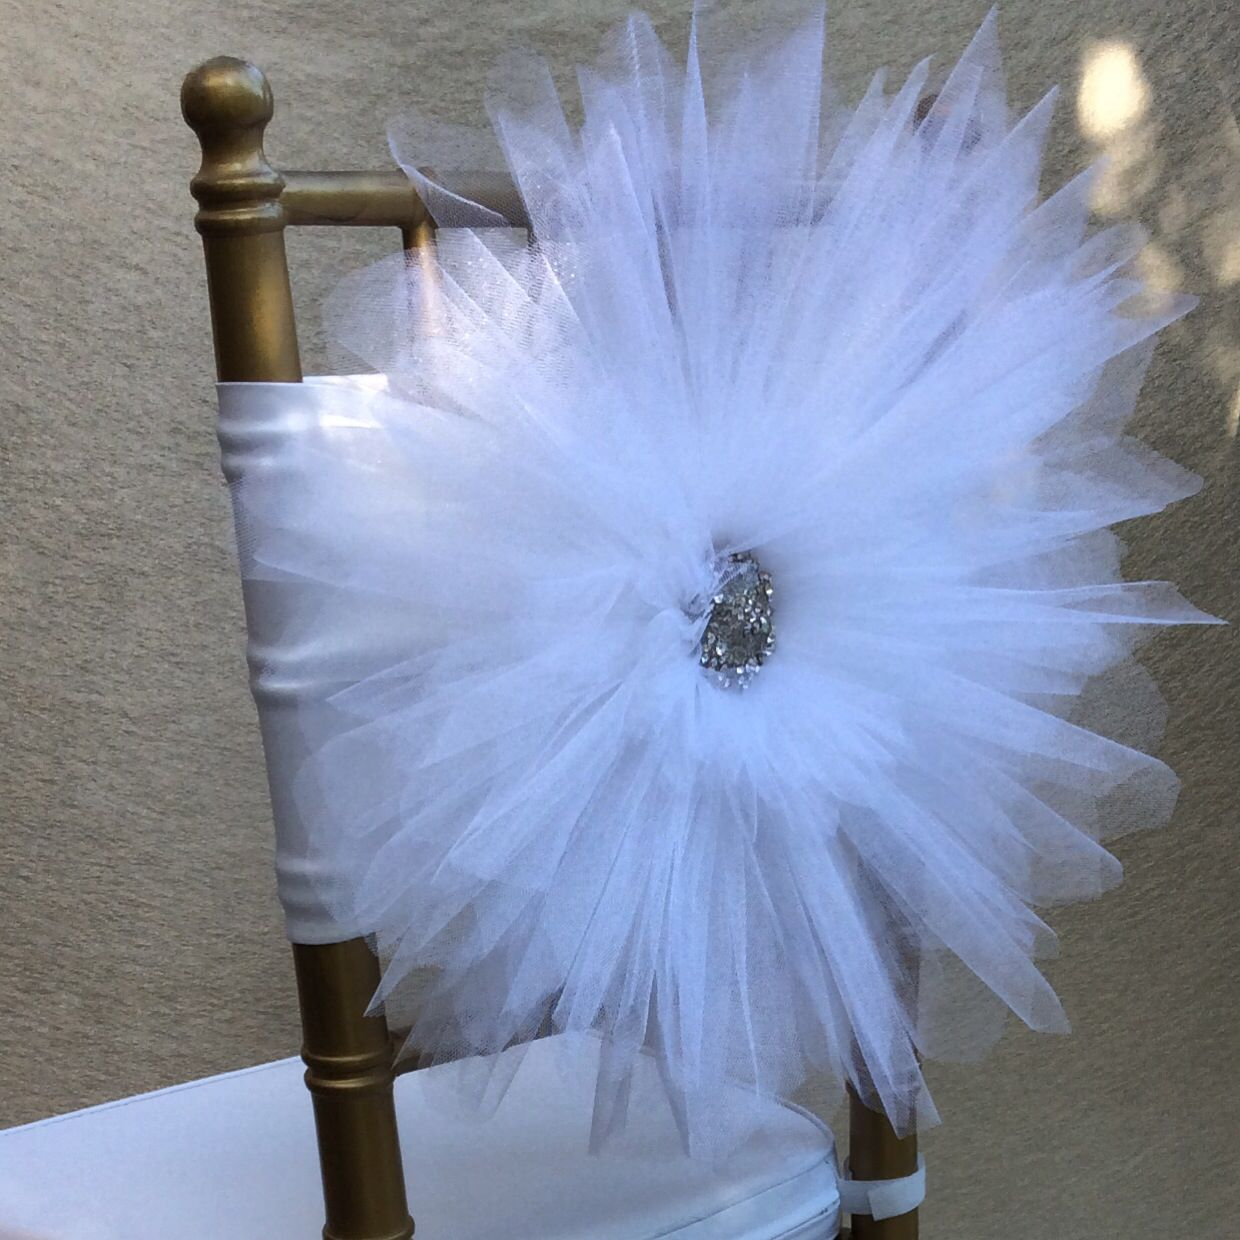 tulle chair covers for wedding cover hire gillingham white decoration with beautiful silver brooch